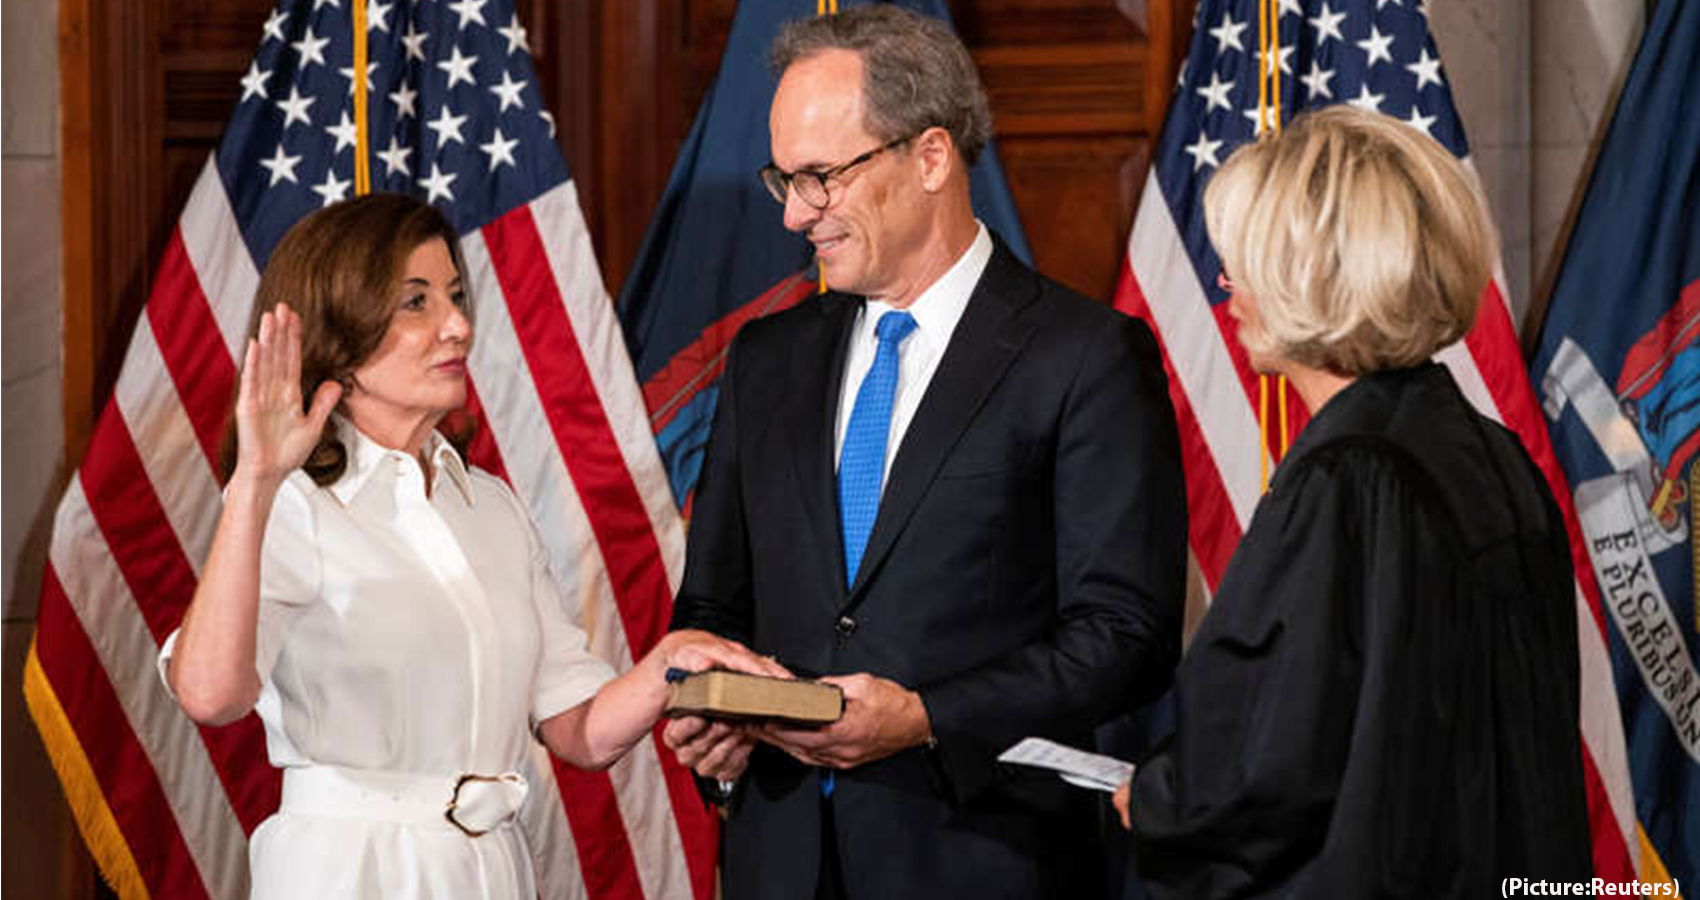 New York has her first ever woman Governor